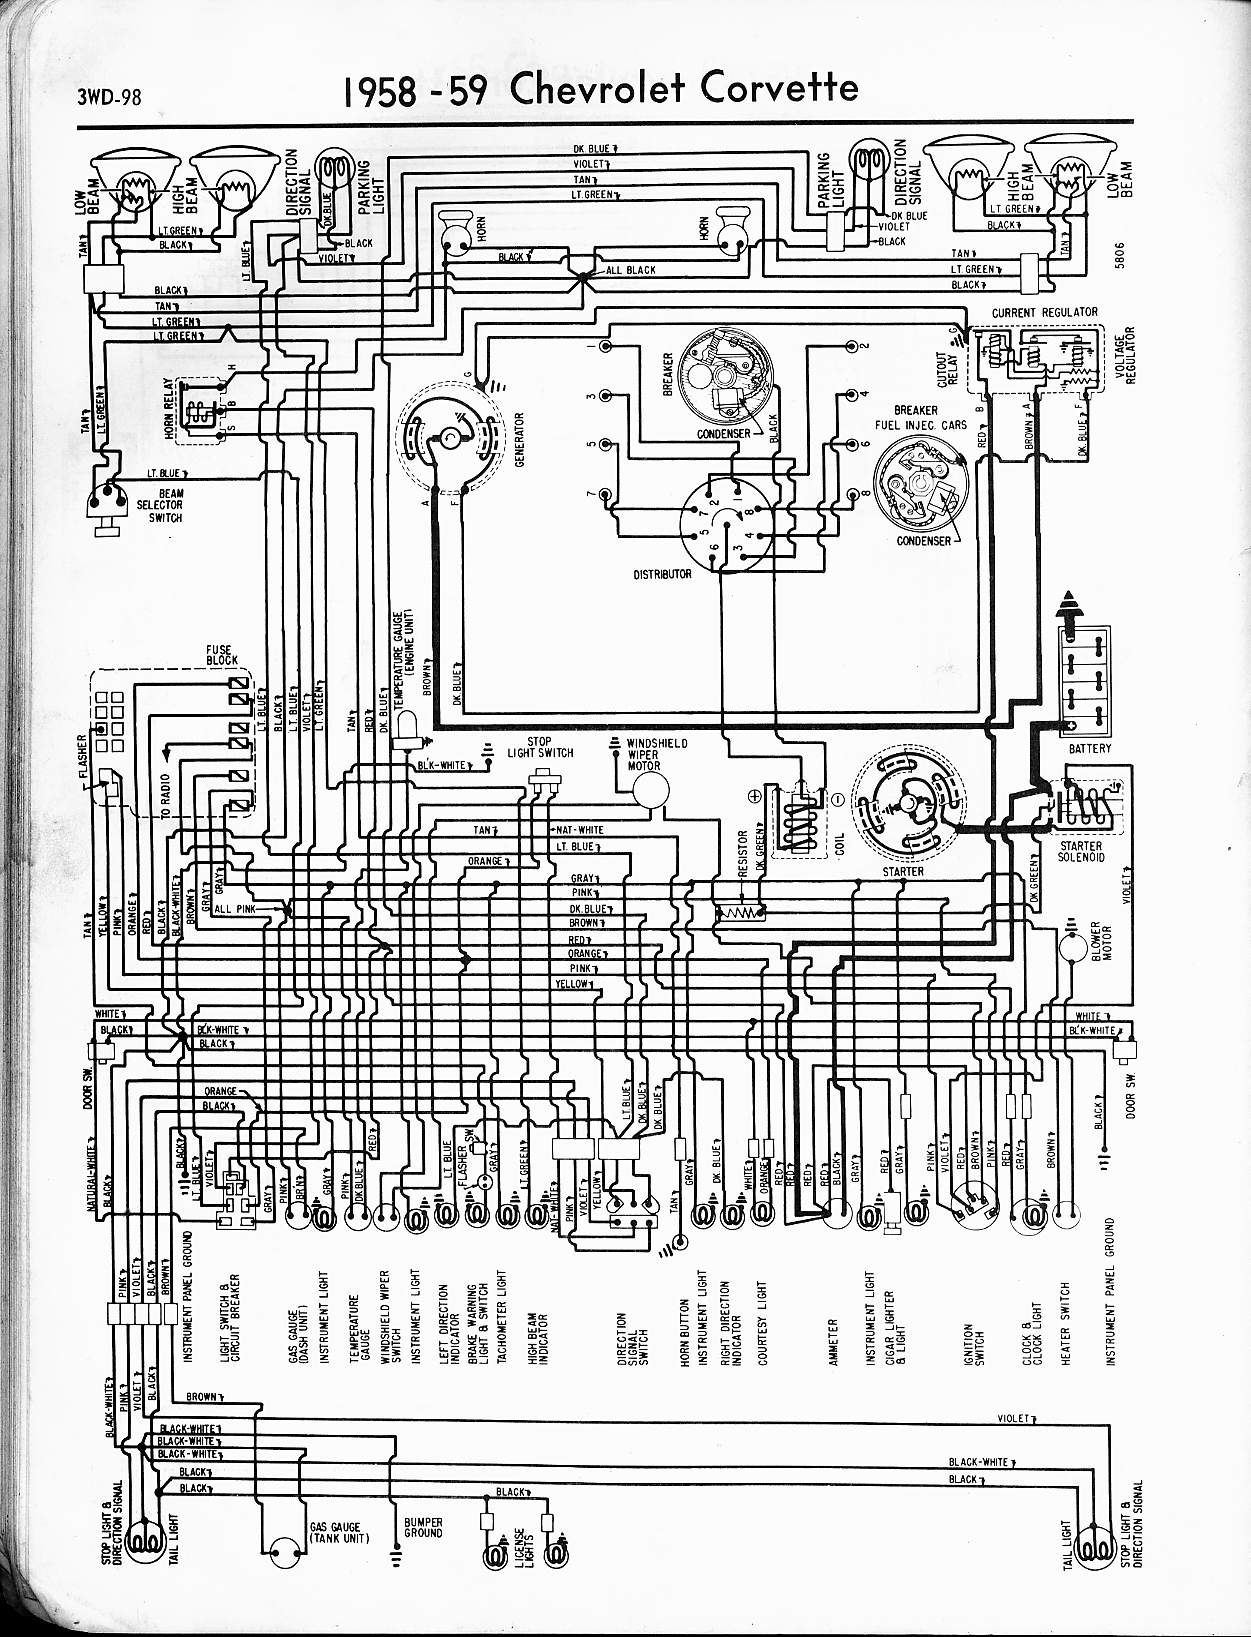 V Engine Block Diagram on v8 head diagram, v8 engine wiring diagram, 1990 ford mustang 5.0 engine diagram, diesel engine diagram, 455 oldsmobile engine diagram, chevy v8 engine diagram, engine water flow diagram, vw engine block diagram, tape recorder block diagram, 2005 volkswagen engine diagram, remote keyless entry block diagram, v8 engine intake diagram, car engine block diagram, big block chevy engine diagram, ford explorer v8 engine diagram, v8 engine line diagram, chevy 350 engine diagram, 350 v8 engine diagram, ls engine block diagram, dodge 318 v8 engine diagram,